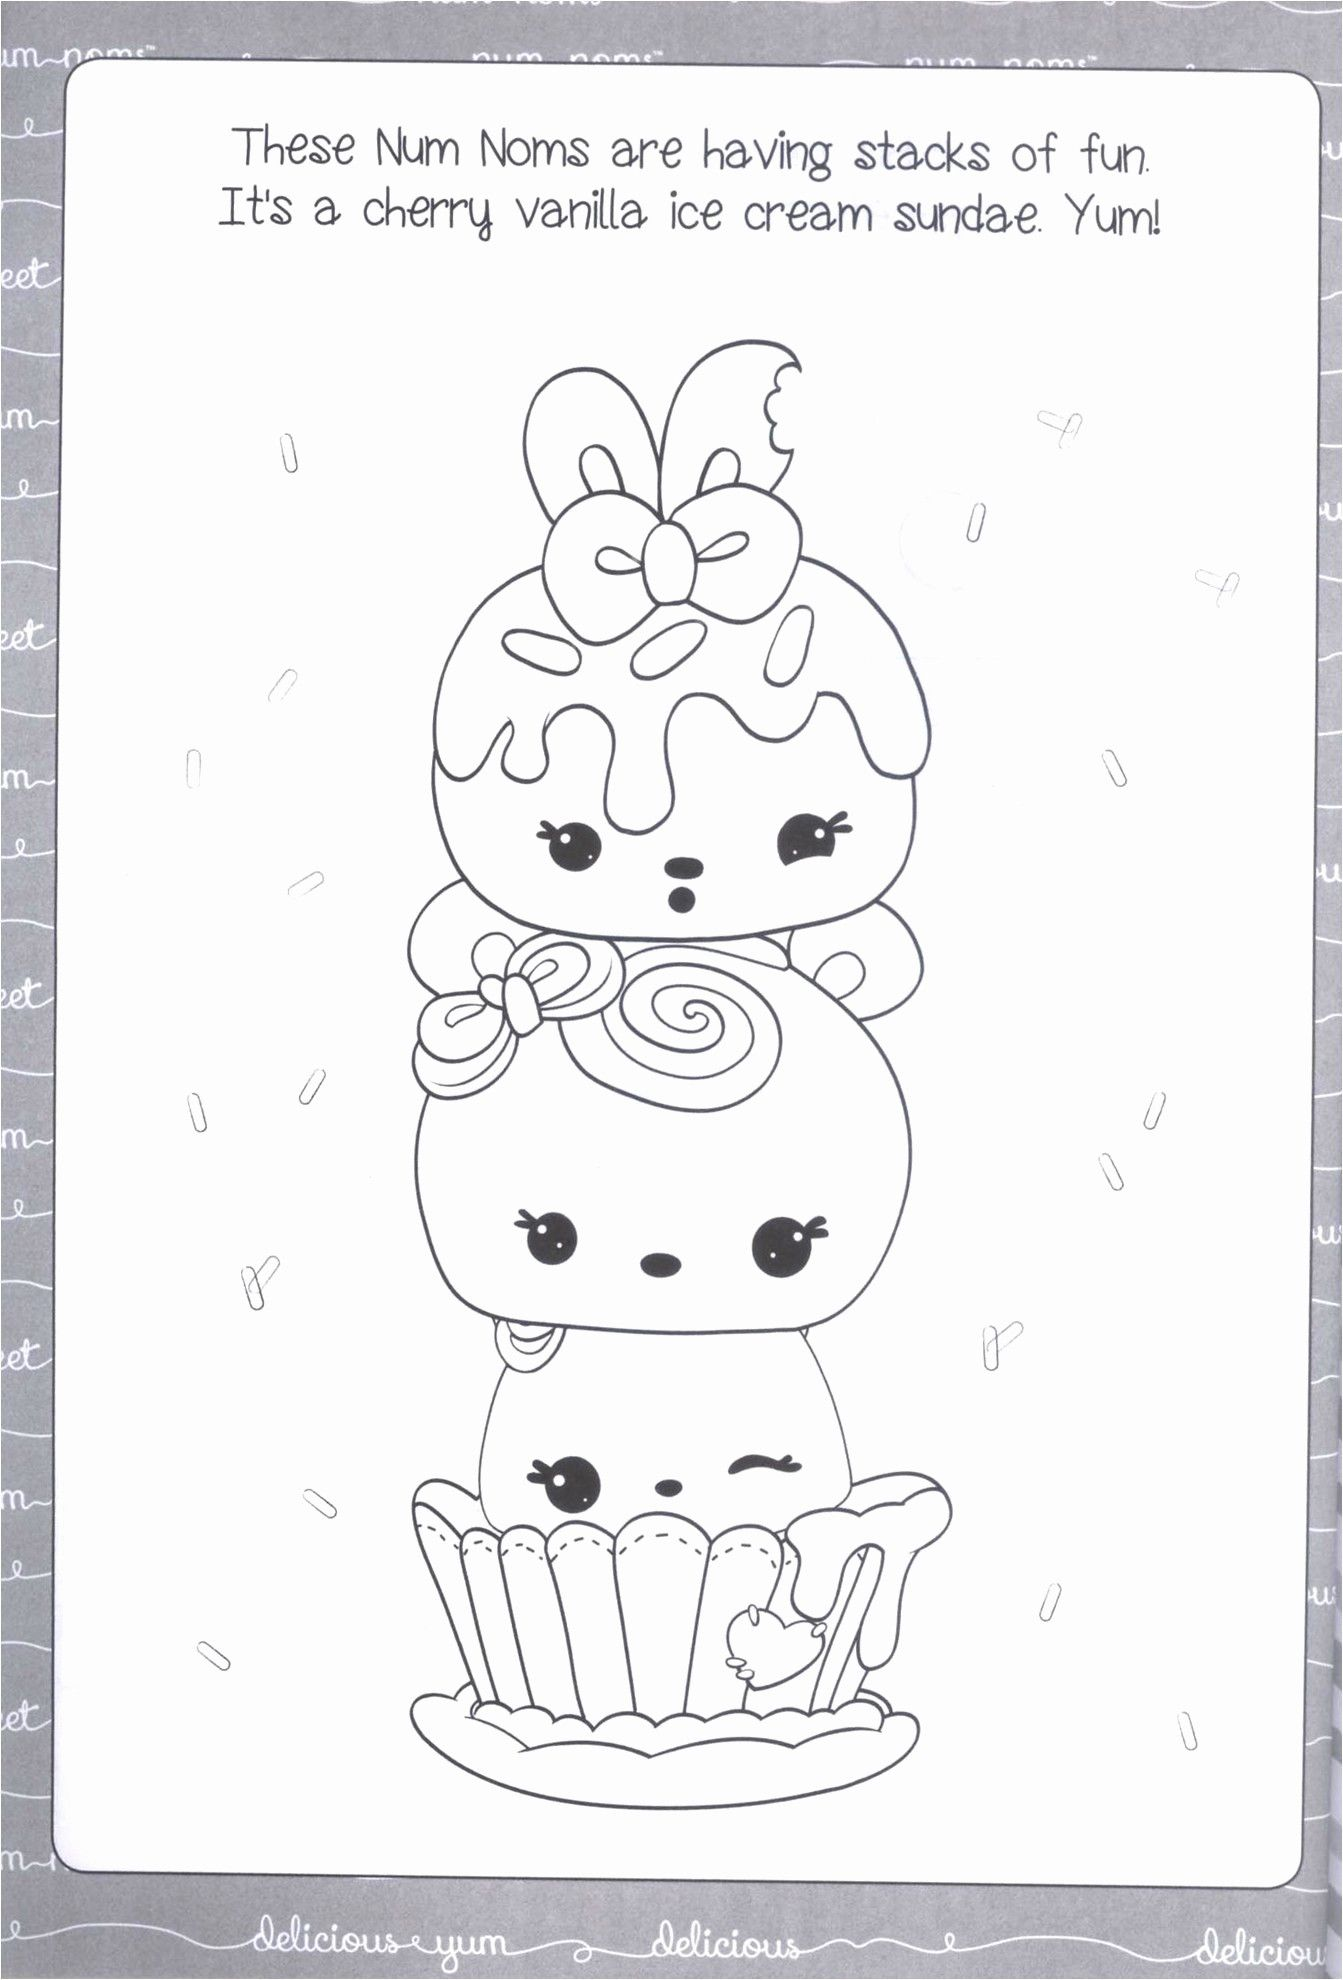 30 Num Noms Coloring Pages To Print And Color Num Noms Ice Cream Truck Coloring Page Coloring Pages Inspirational Coloring Pages To Print Coloring Pages